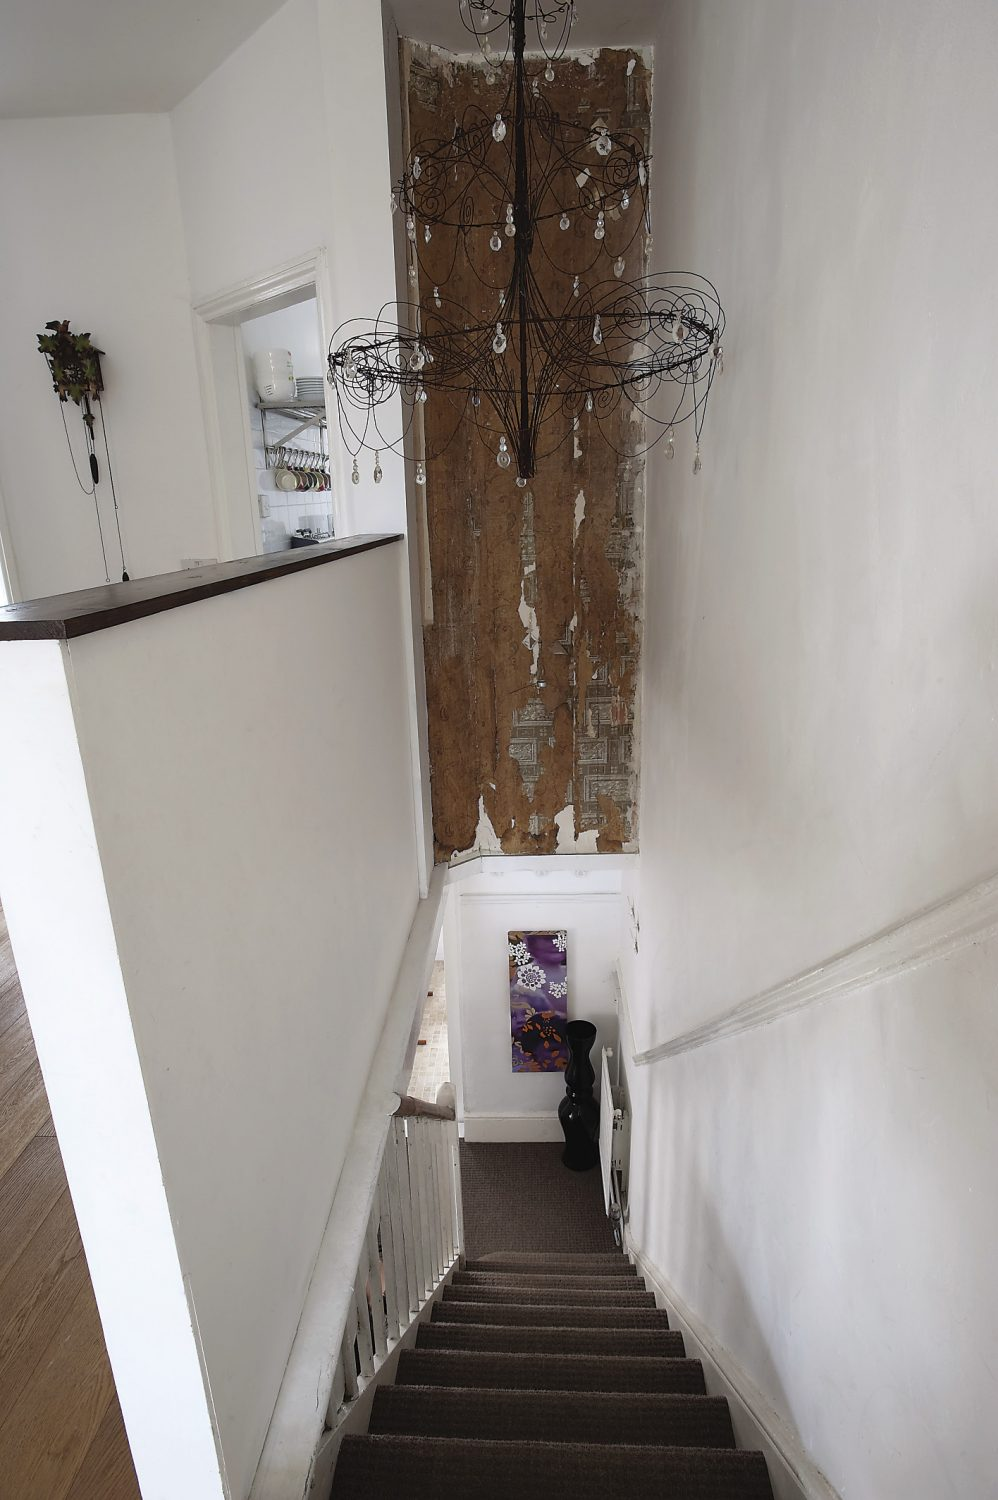 An intricate wire and glass chandelier, made by John, hangs above the staircase on the first floor